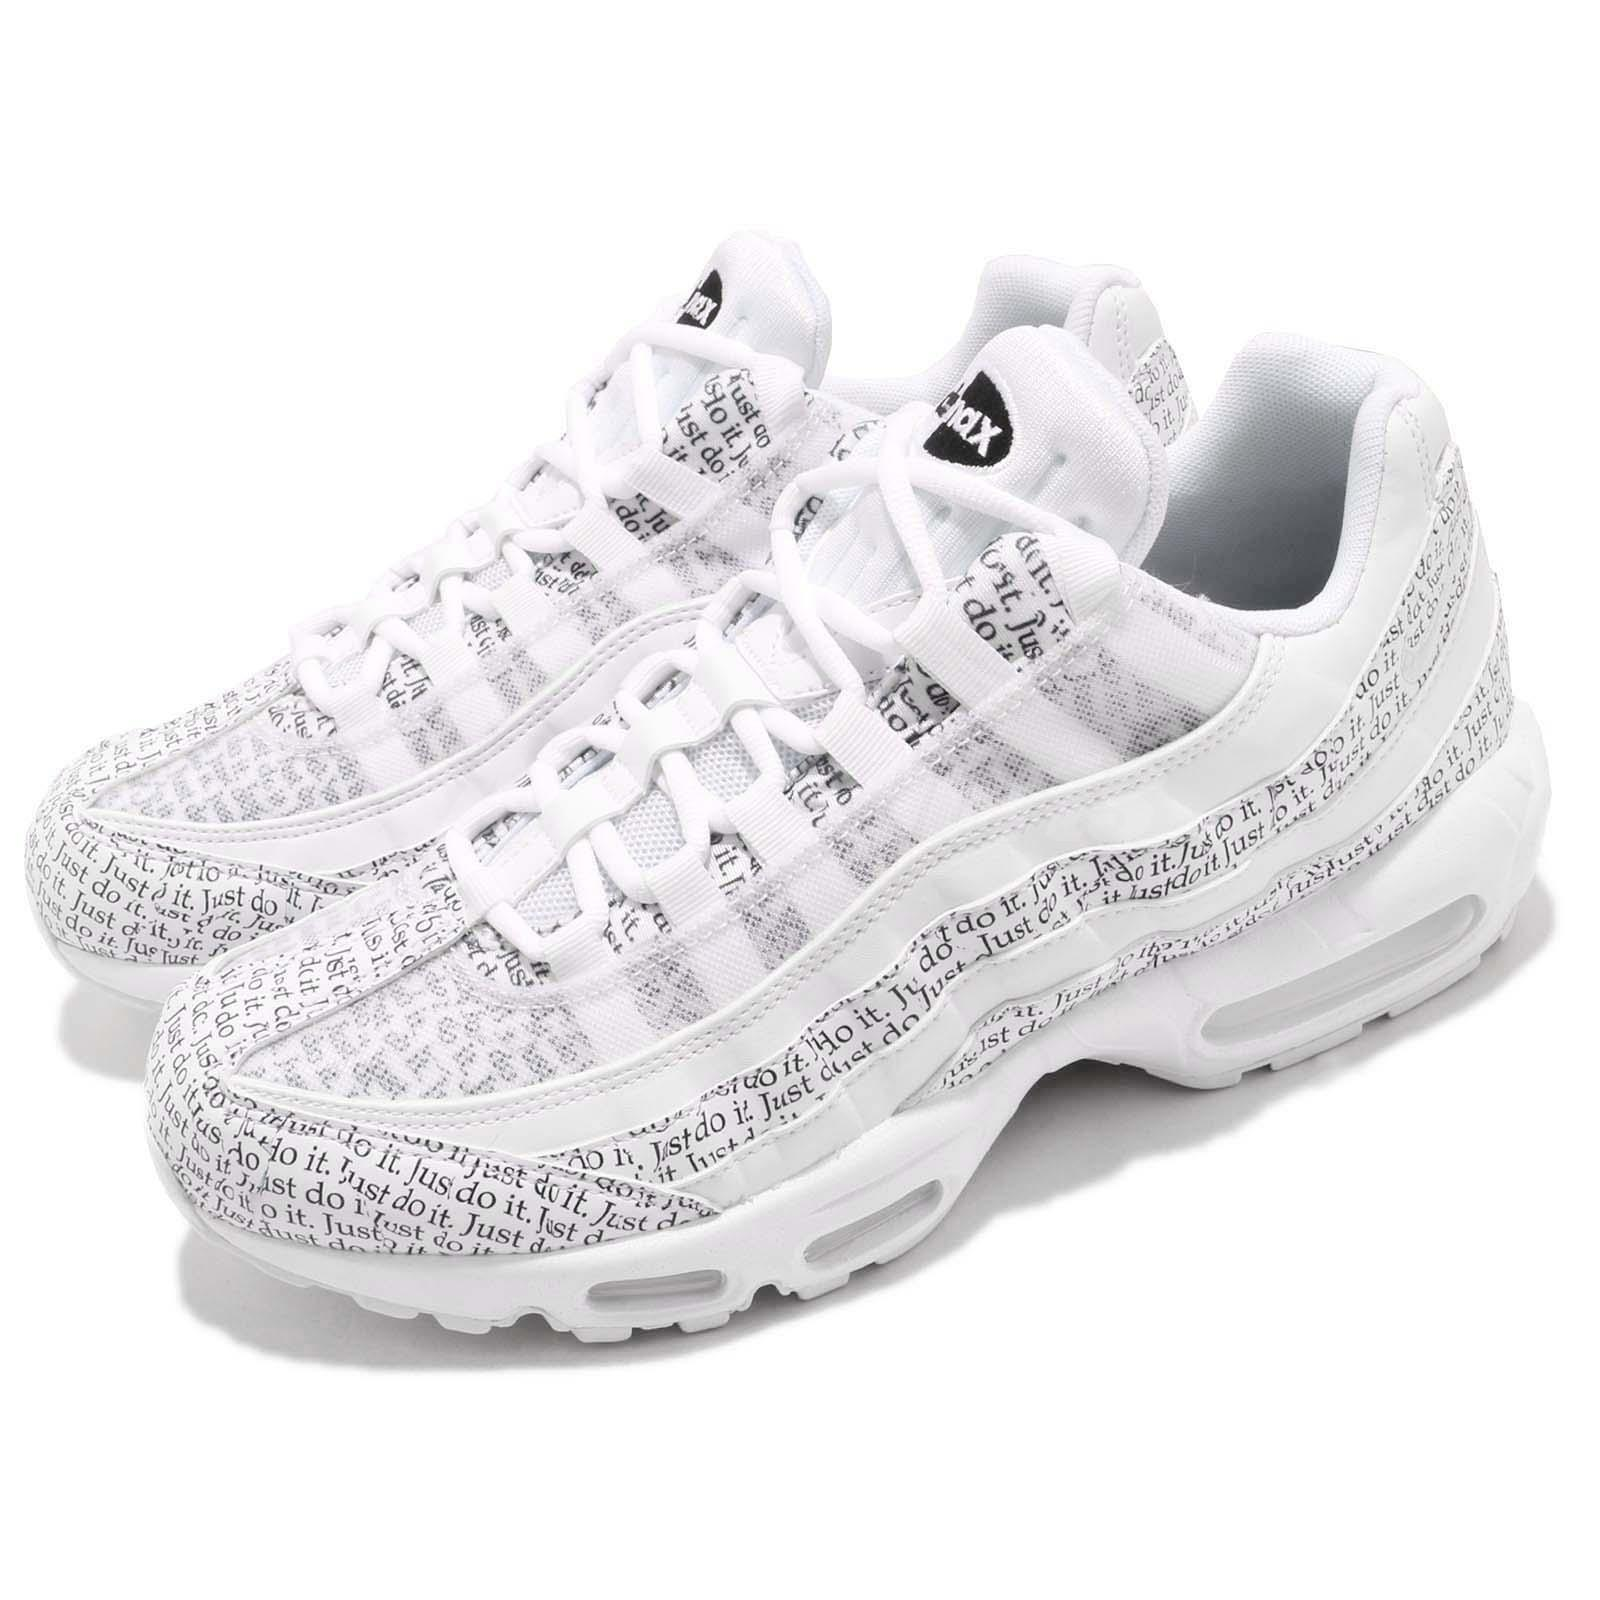 Nike Air Max 95 SE White Just Do It Pack Mens Running shoes NSW AV6246-100